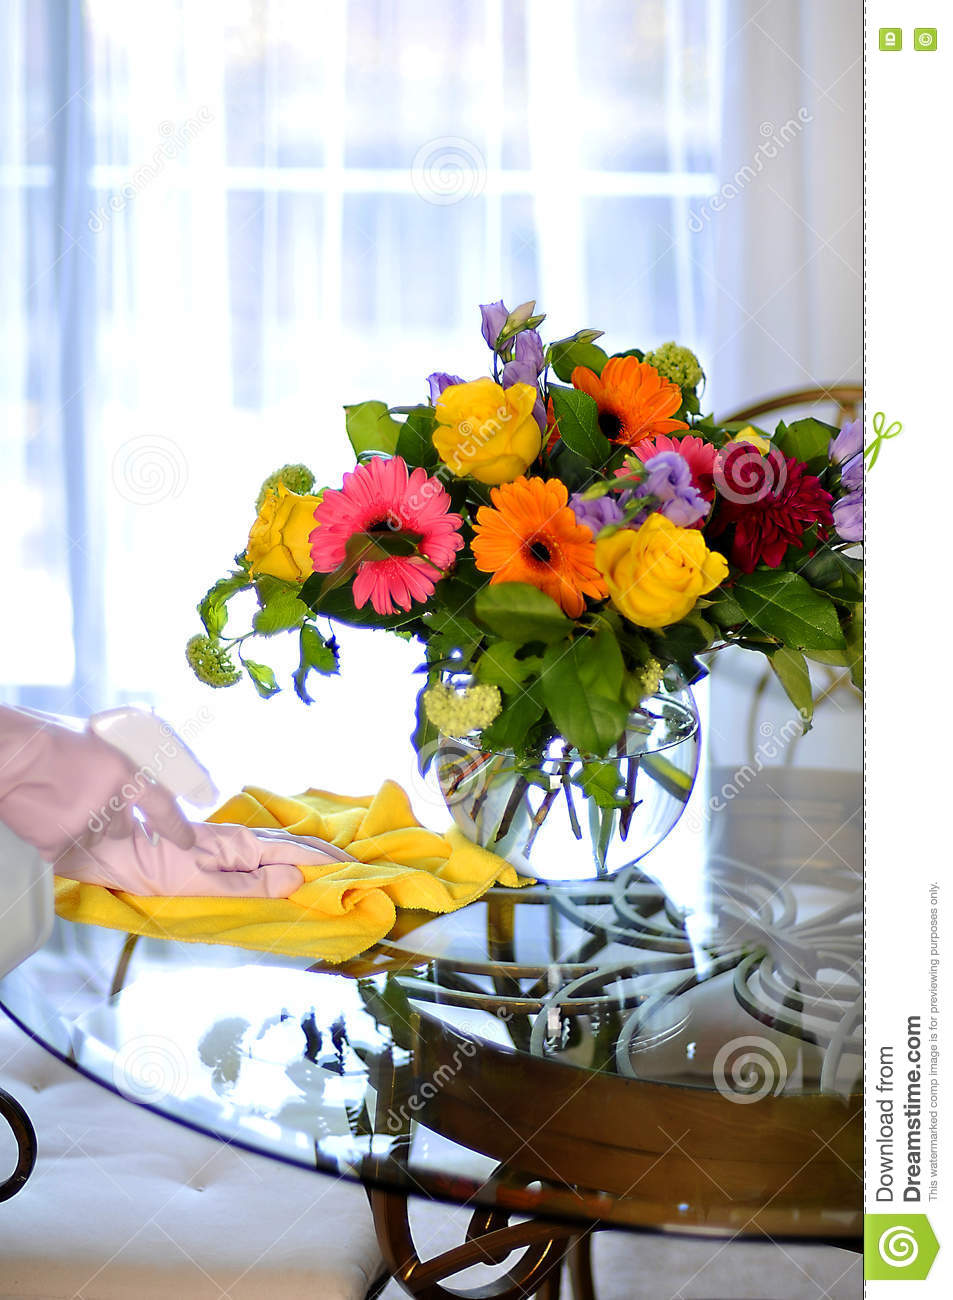 Cleaning House Spray And Towel Near Flowers On Table Stock Photo